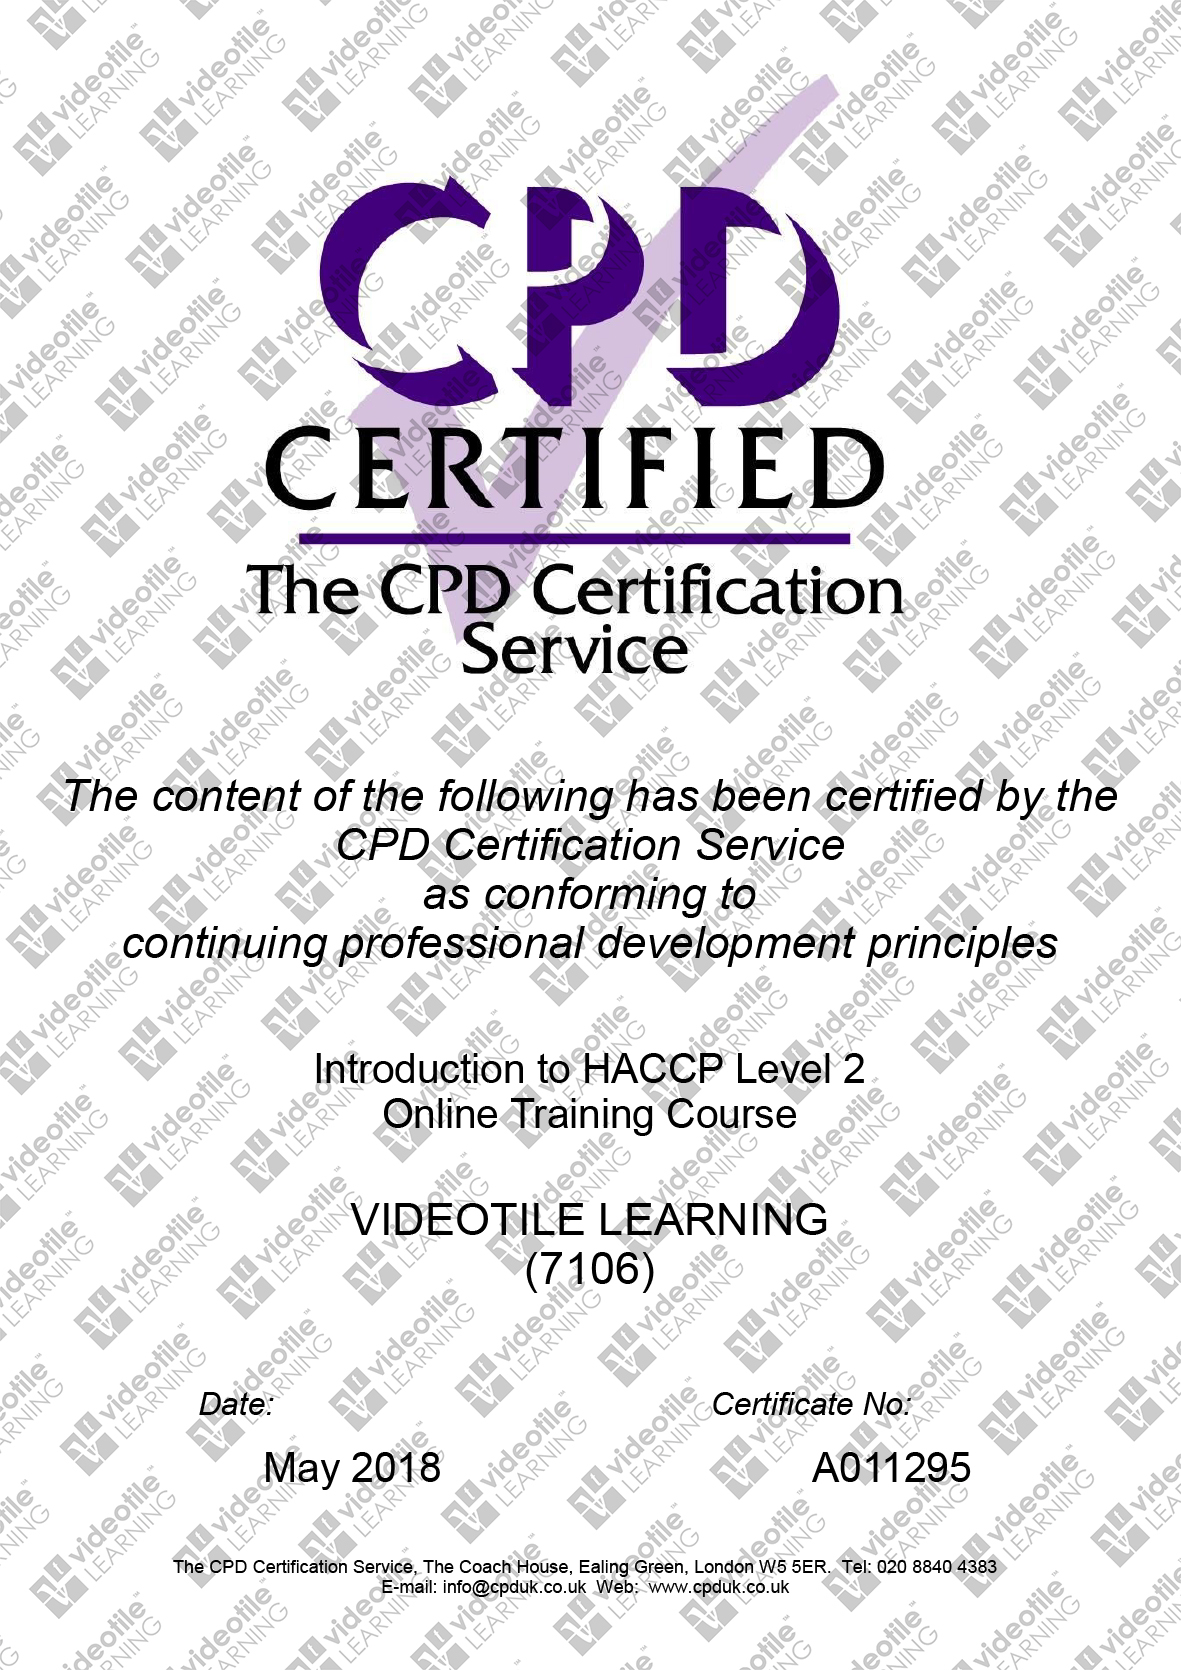 Introduction to HACCP Level 2 Training - ERYRI CONSULTING